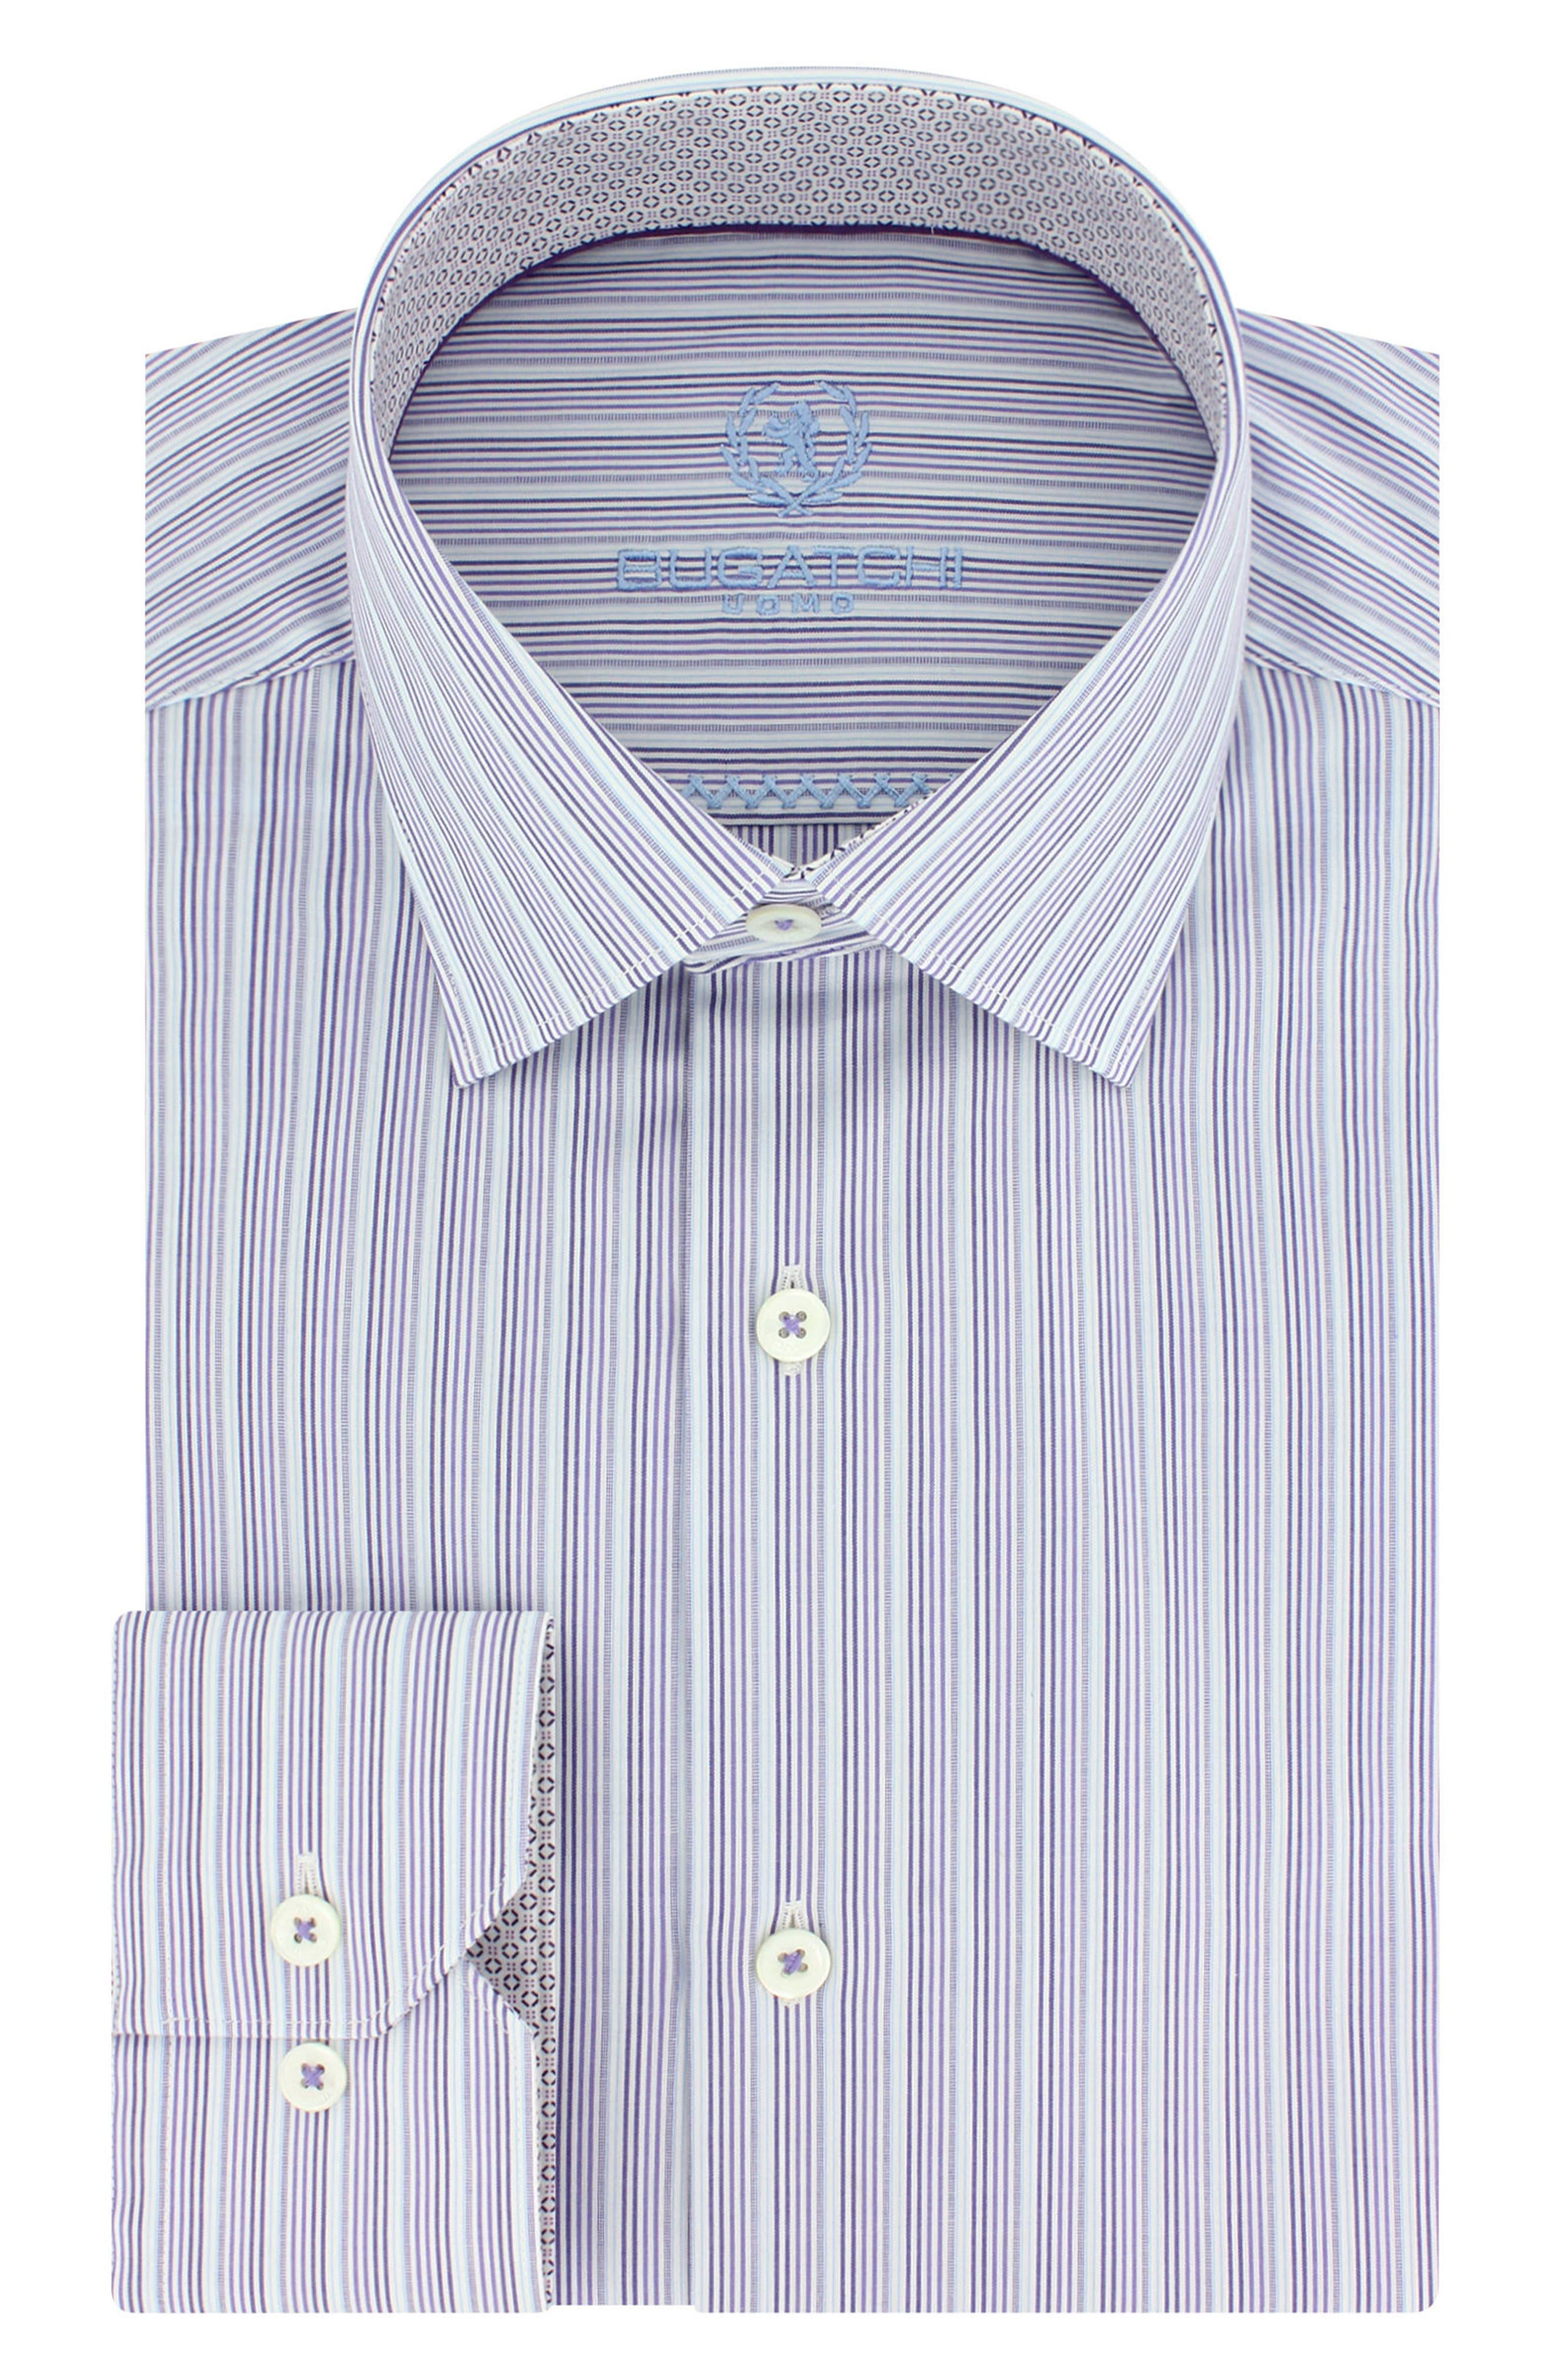 Alternate Image 1 Selected - Bugatchi Trim Fit Stripe Dress Shirt